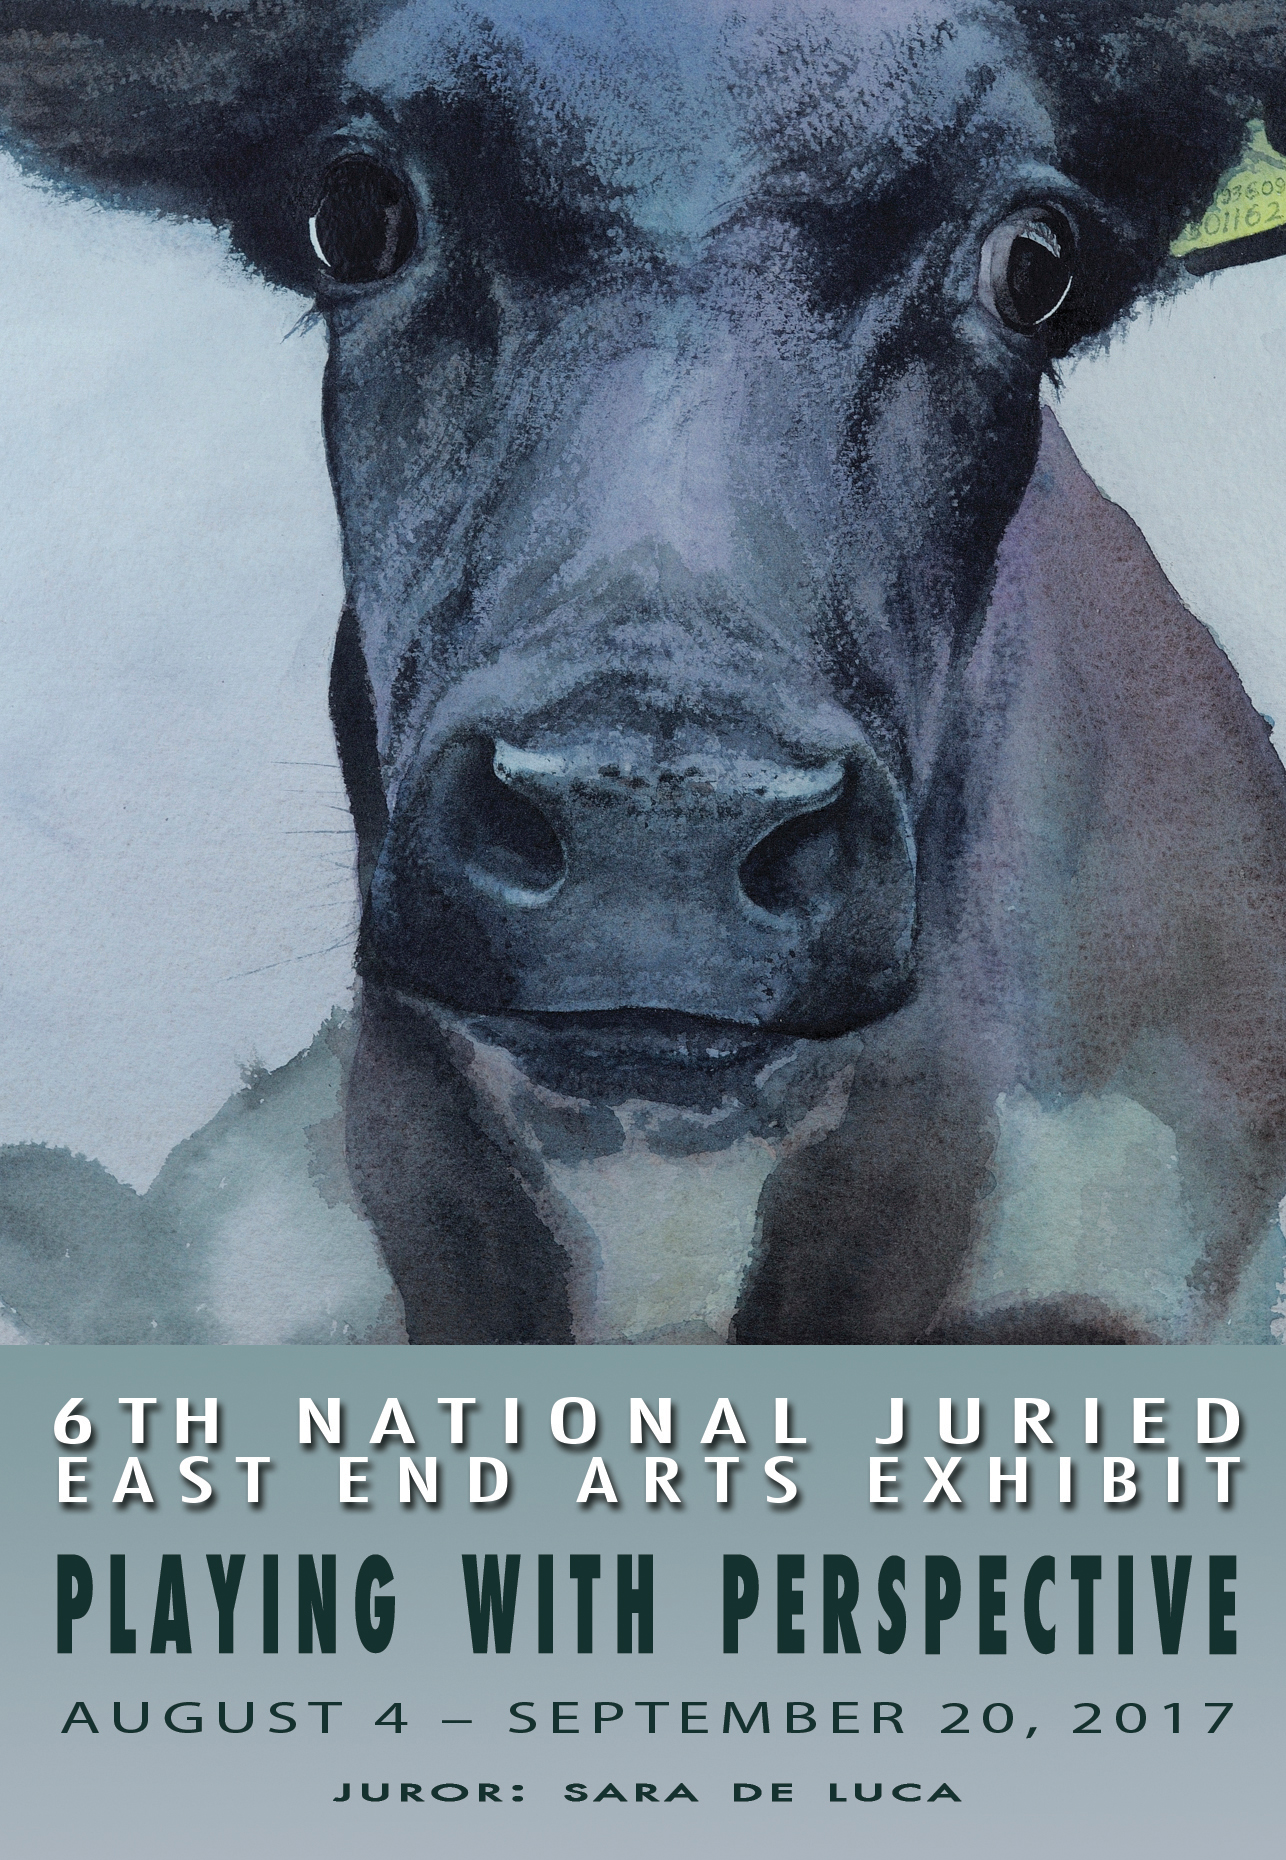 6th ANNUAL NATIONAL COMPETITION & EXHIBIT